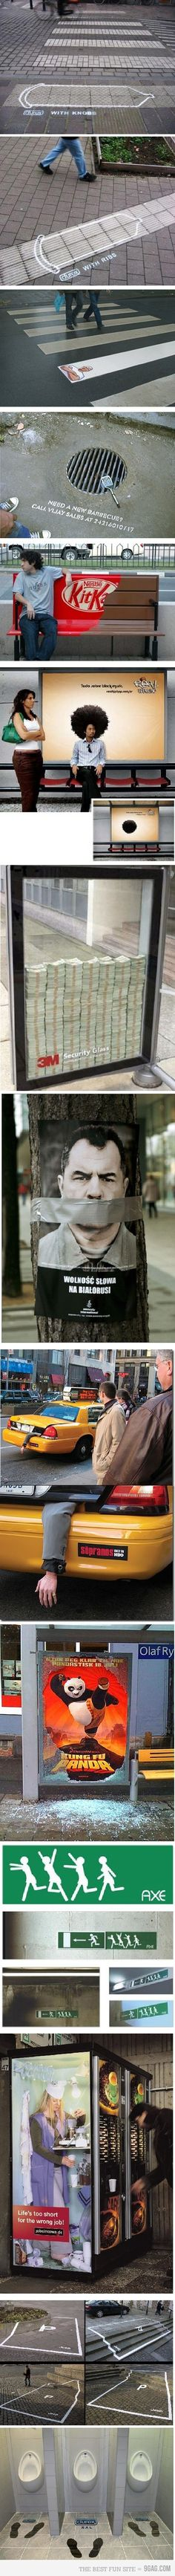 Le meilleur du street marketing!!